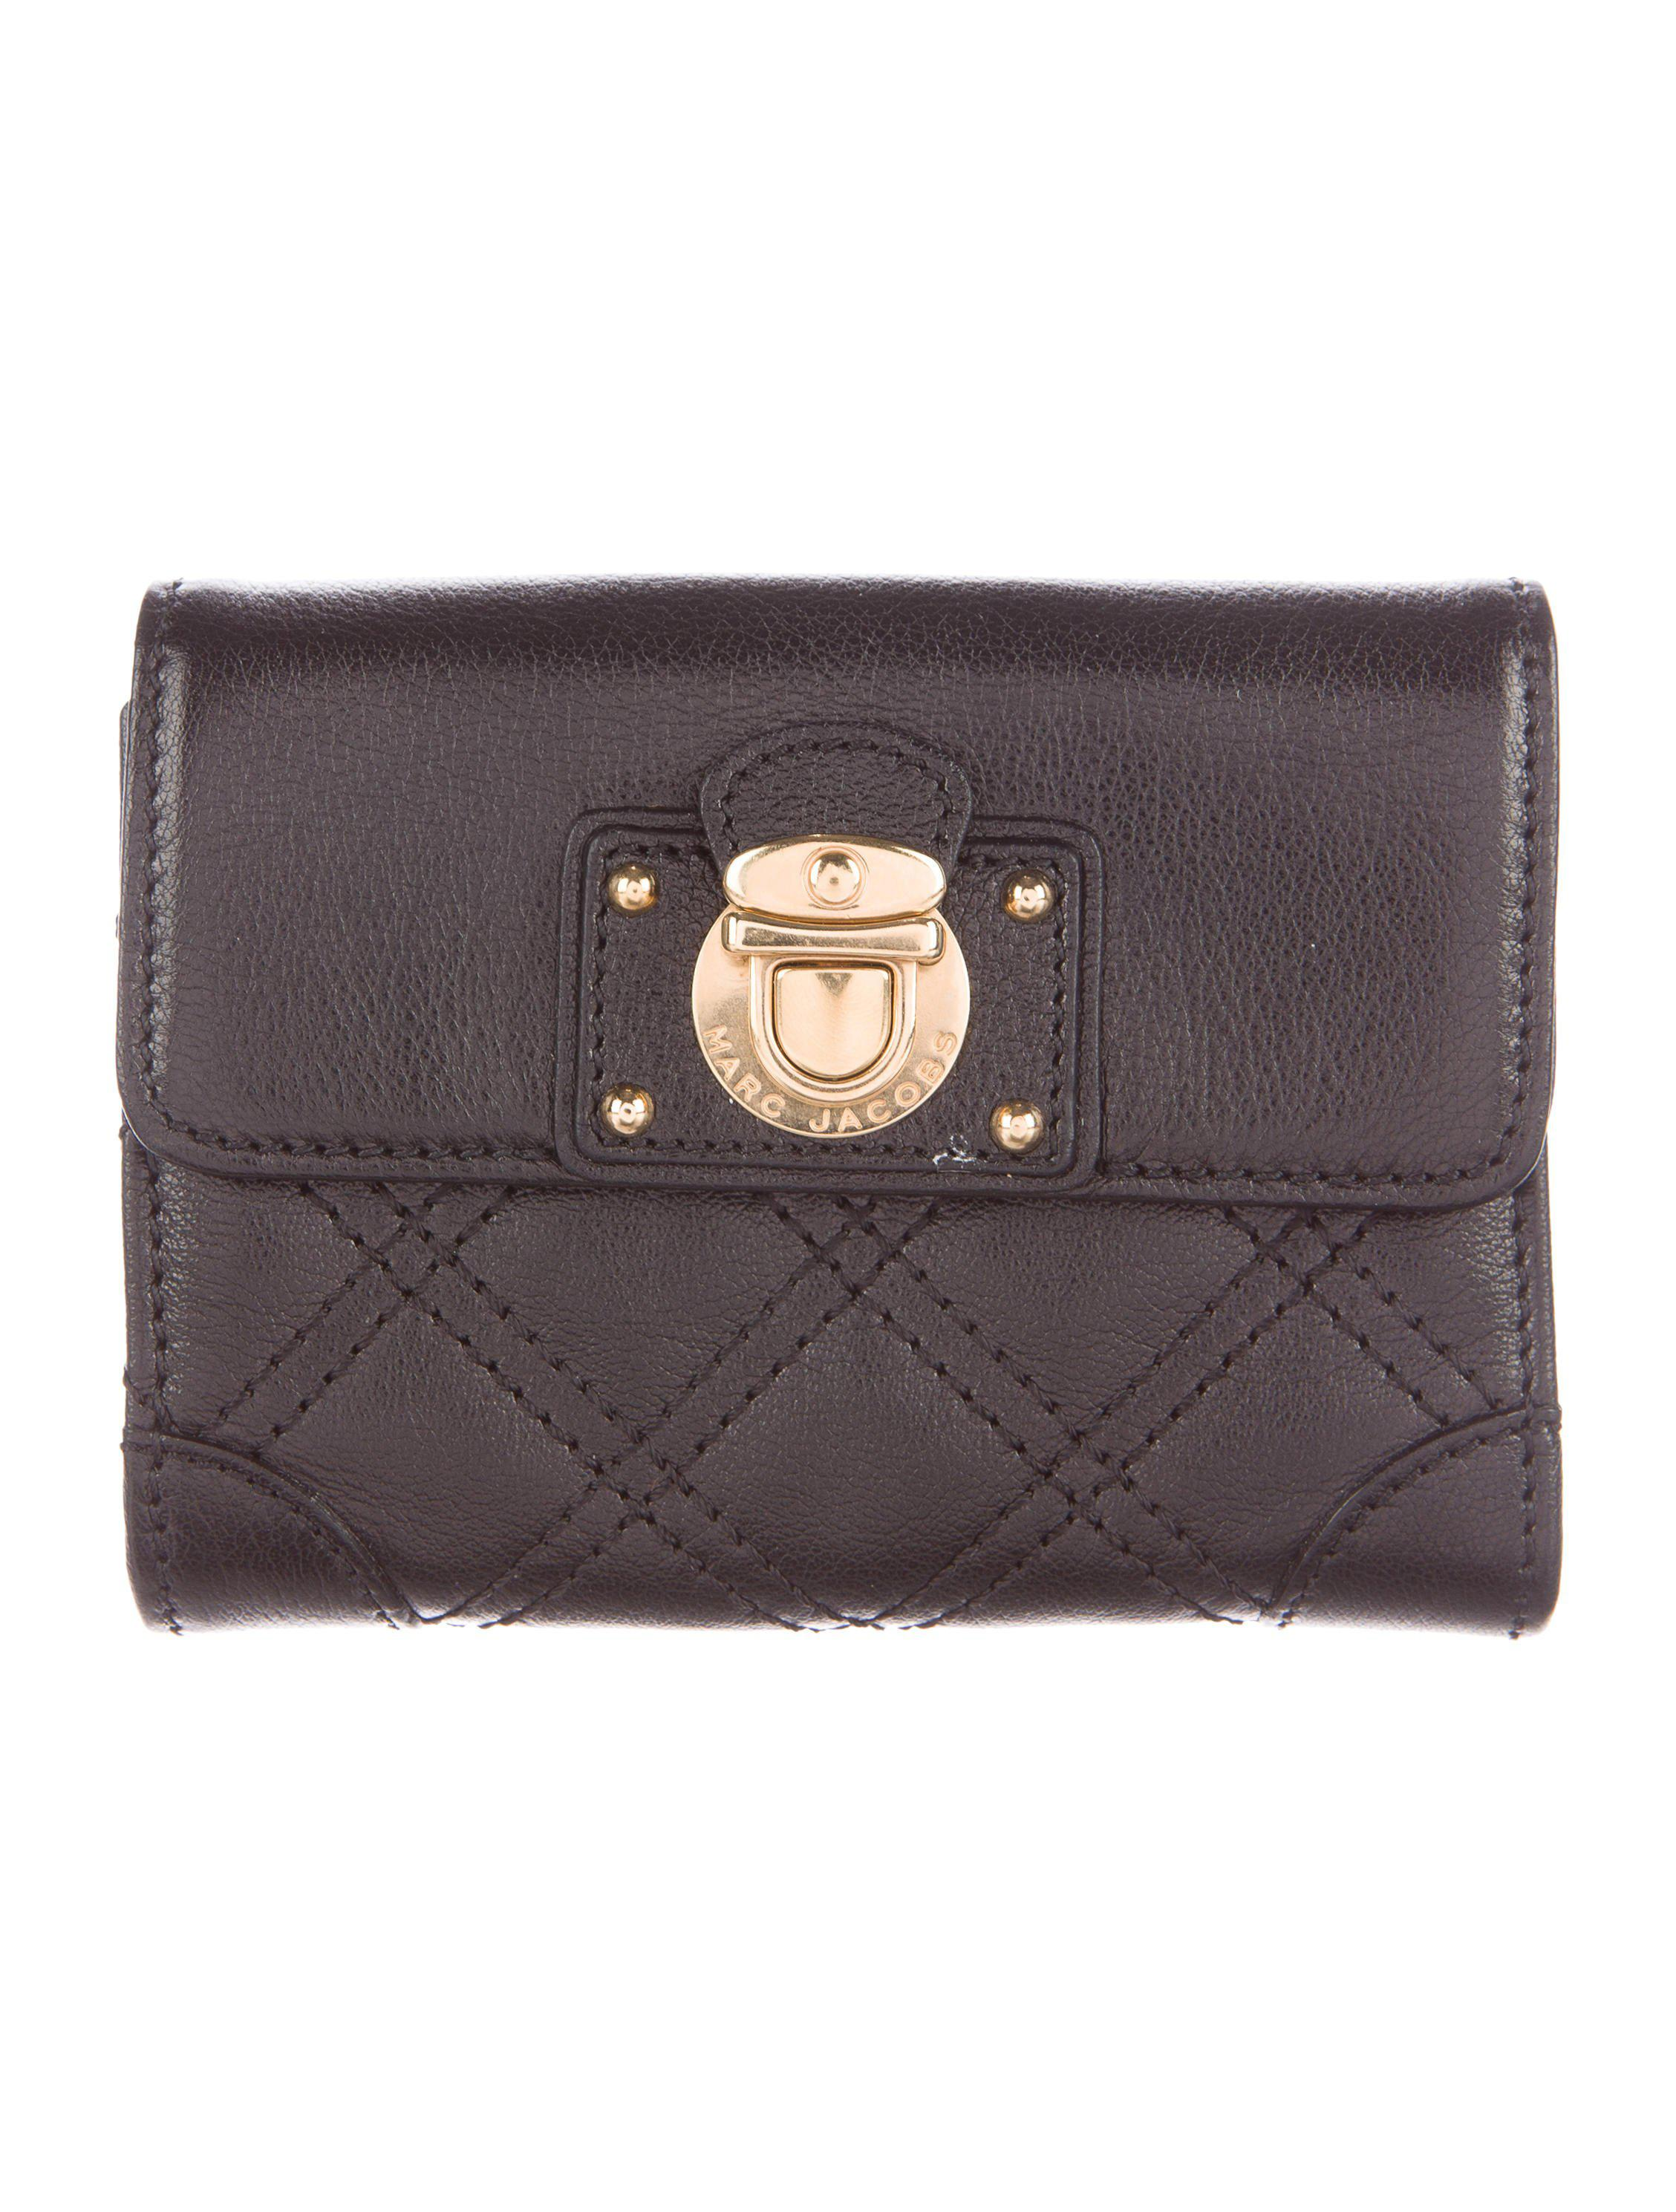 Marc jacobs Quilted Leather Compact Wallet Black in Metallic | Lyst : marc jacobs quilted wallet - Adamdwight.com